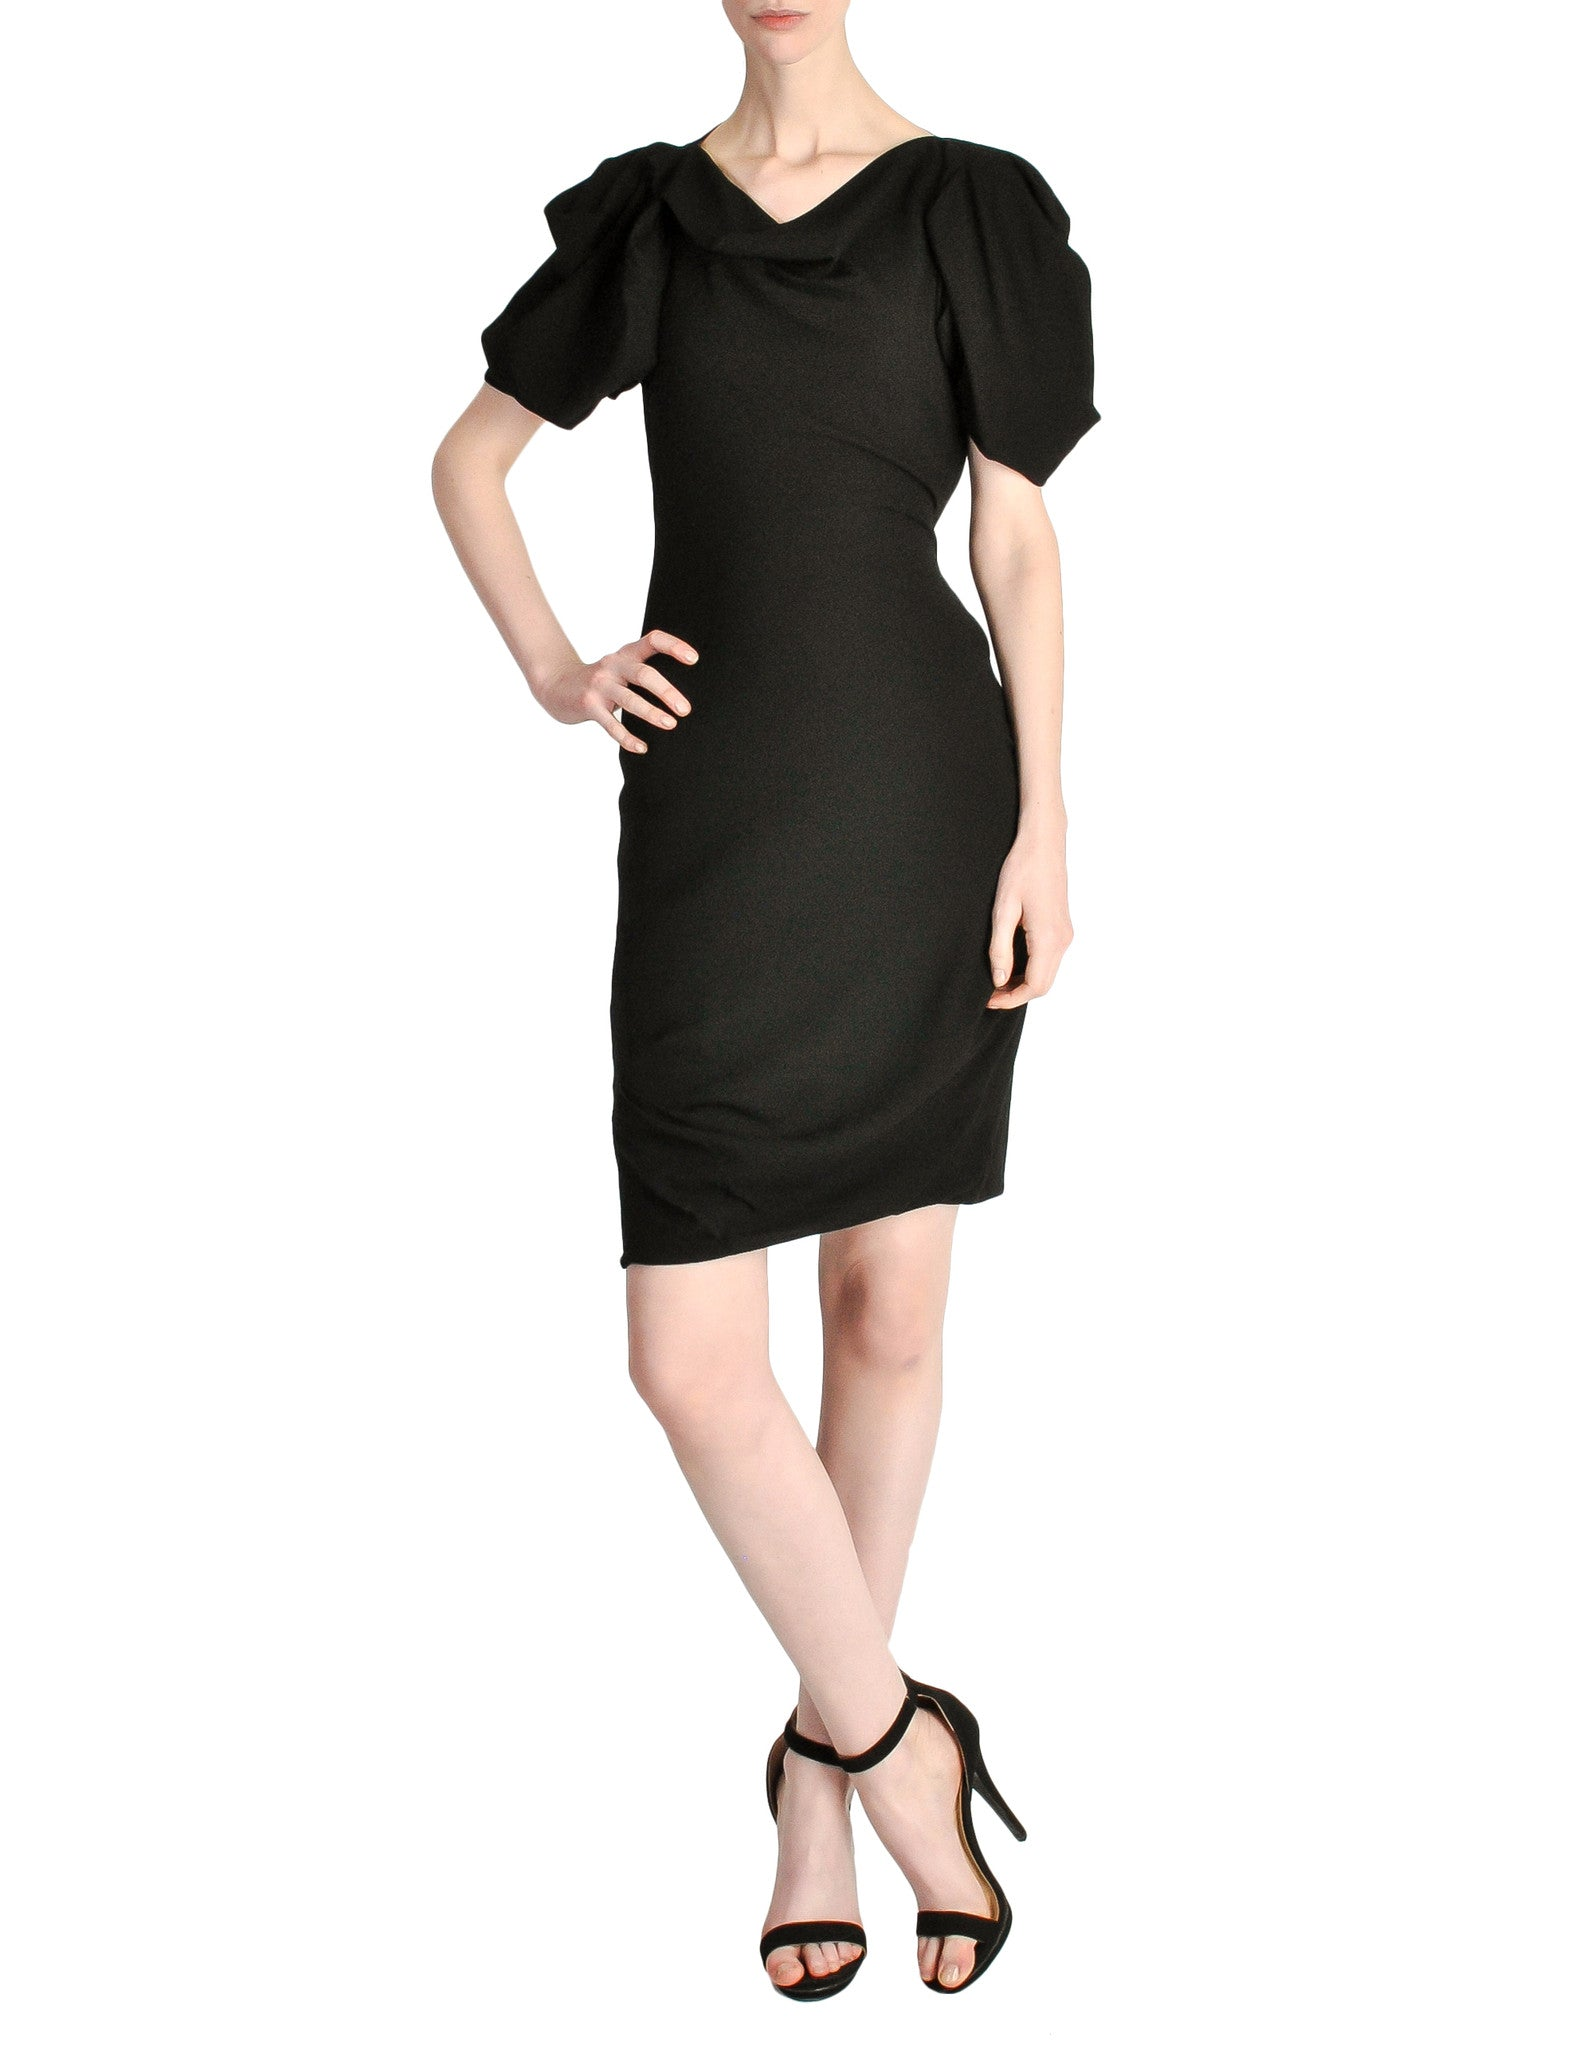 Vivienne Westwood Red Label Black Crepe Dress - Amarcord Vintage Fashion  - 1